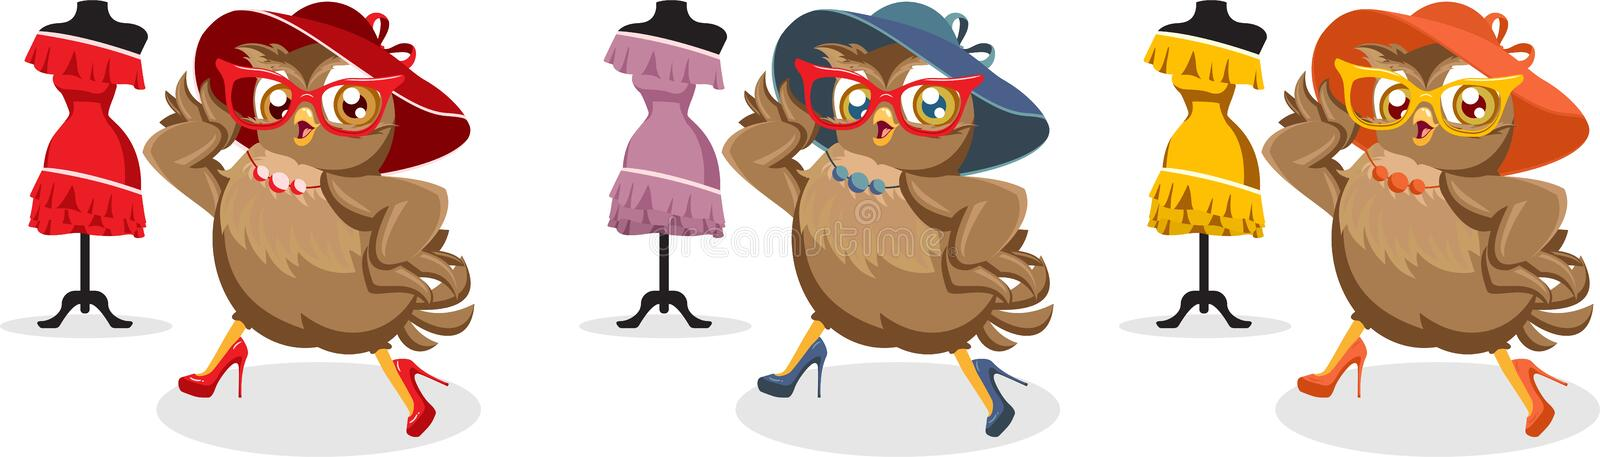 Seth Fashion illustration owl in hat and sunglasses. Set of three illustrations Fashion owl wearing a hat and sunglasses vector illustration